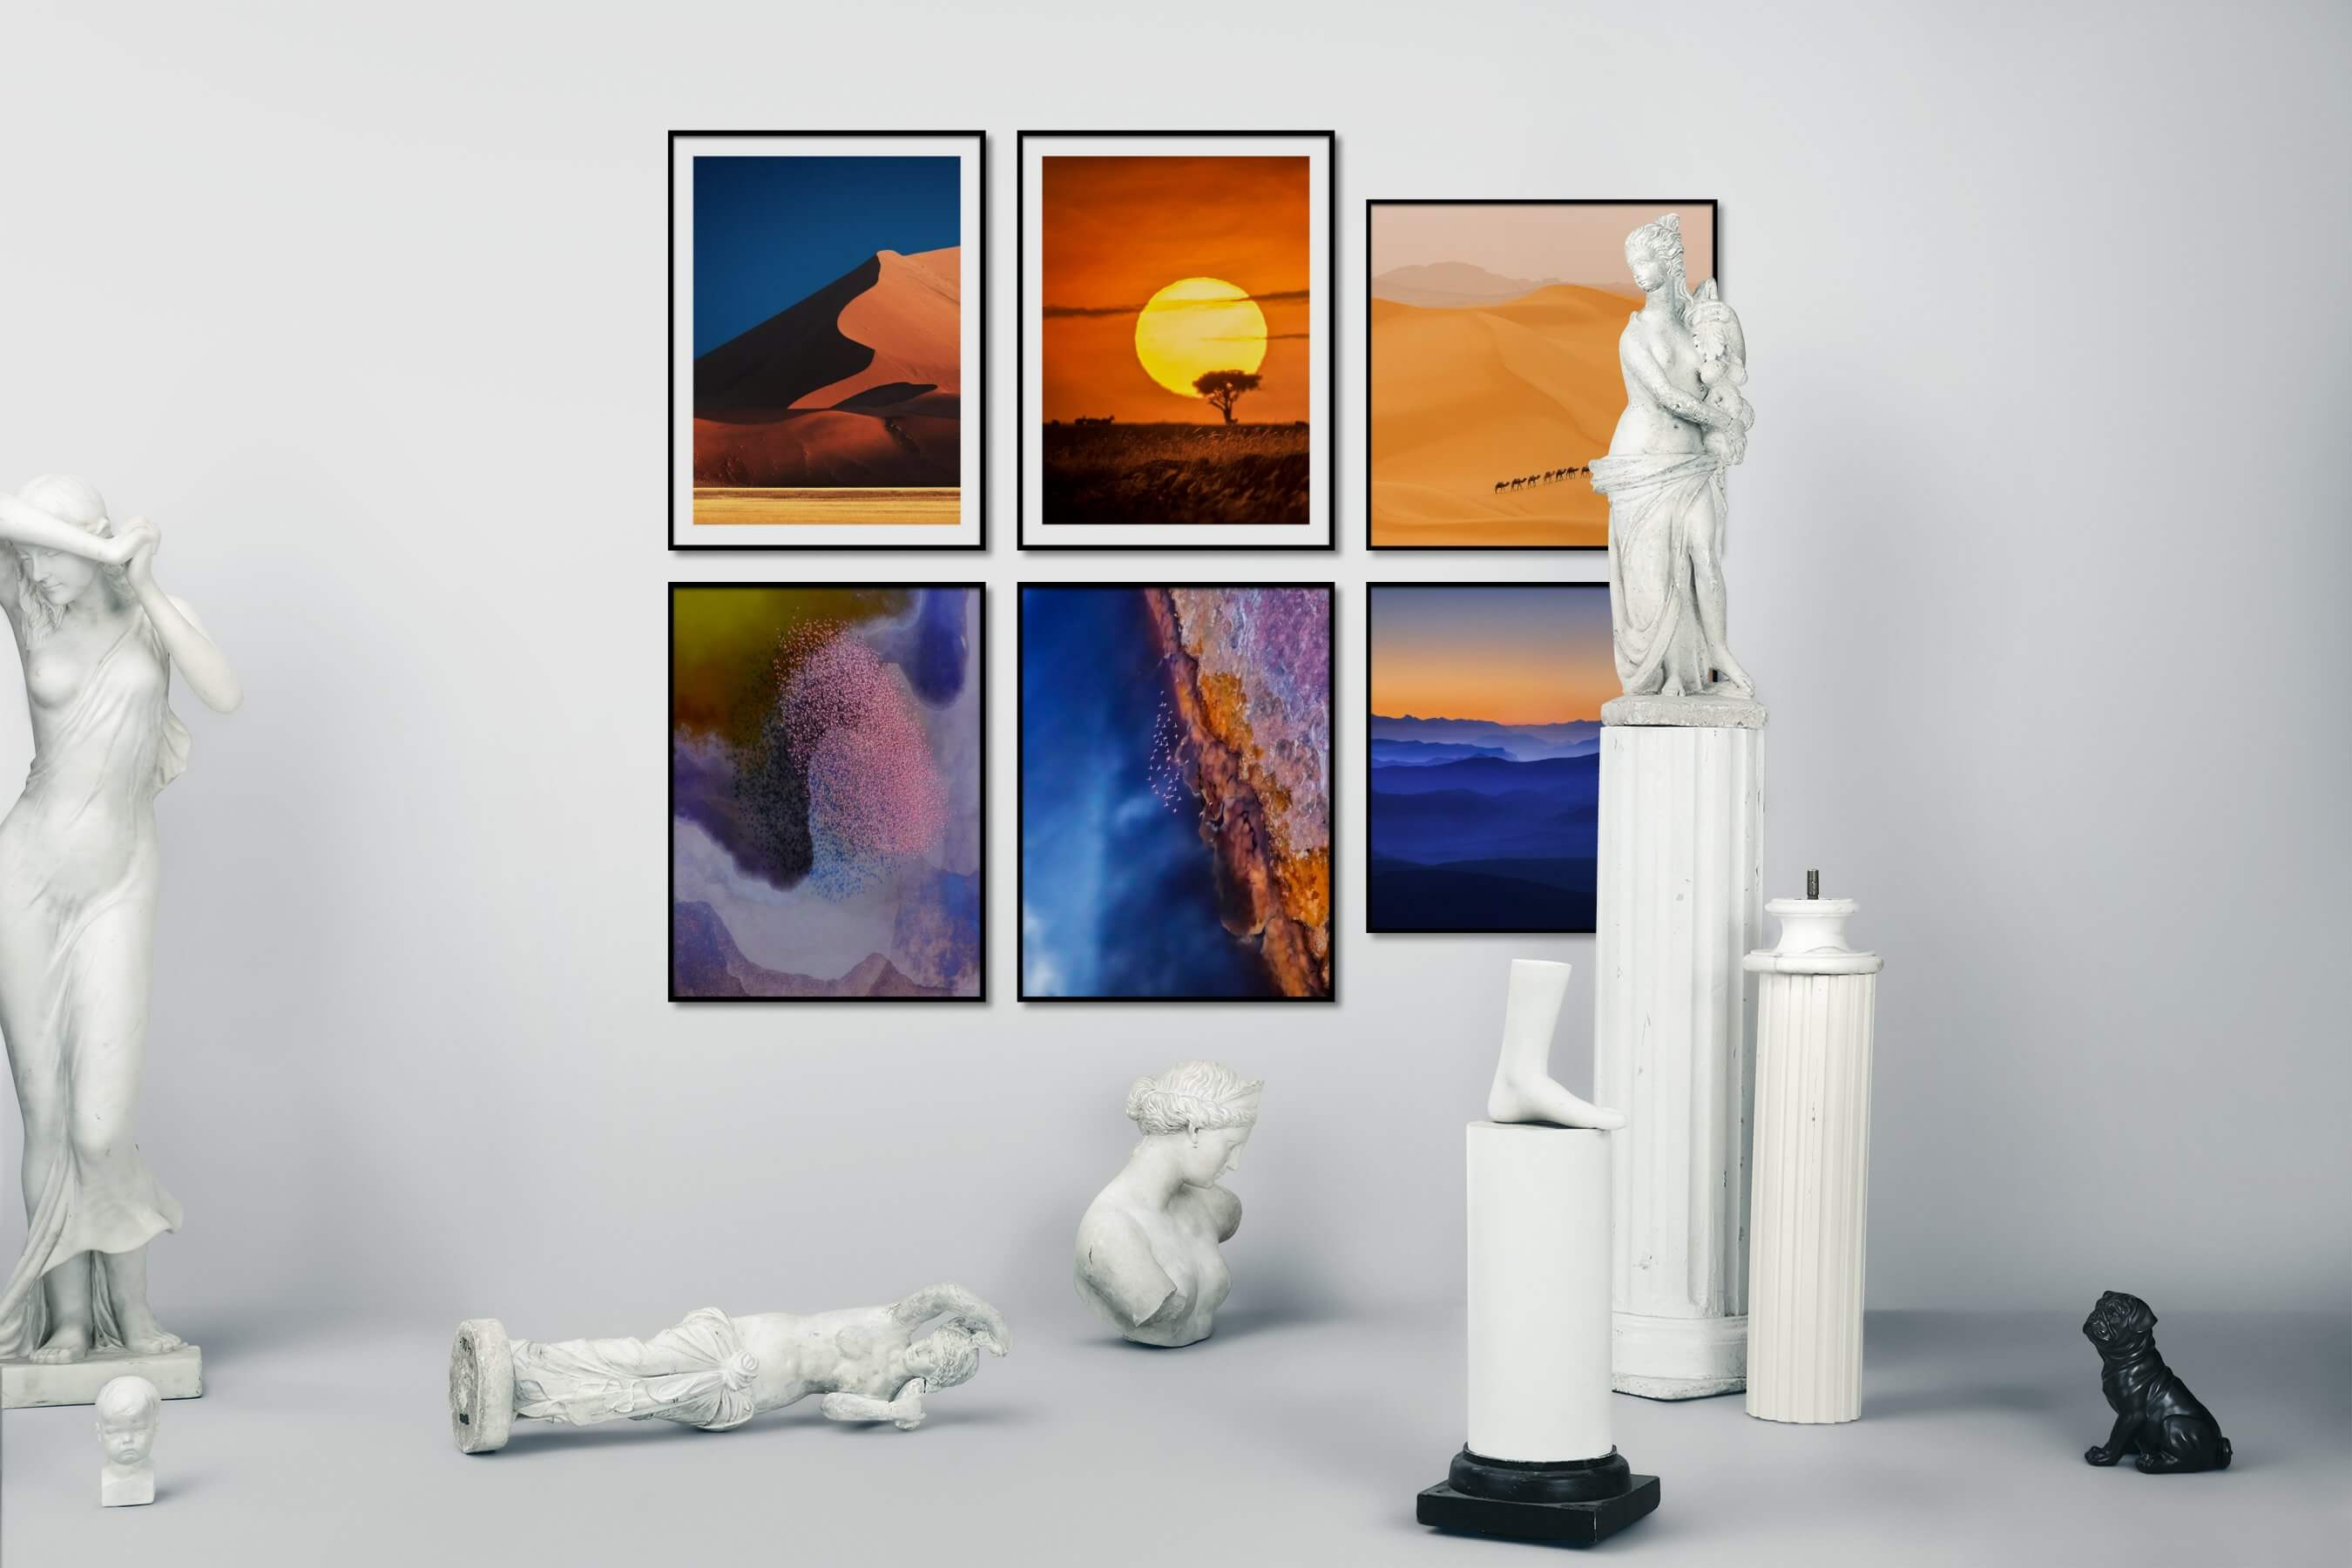 Gallery wall idea with six framed pictures arranged on a wall depicting For the Moderate, Nature, For the Minimalist, Animals, and Mindfulness